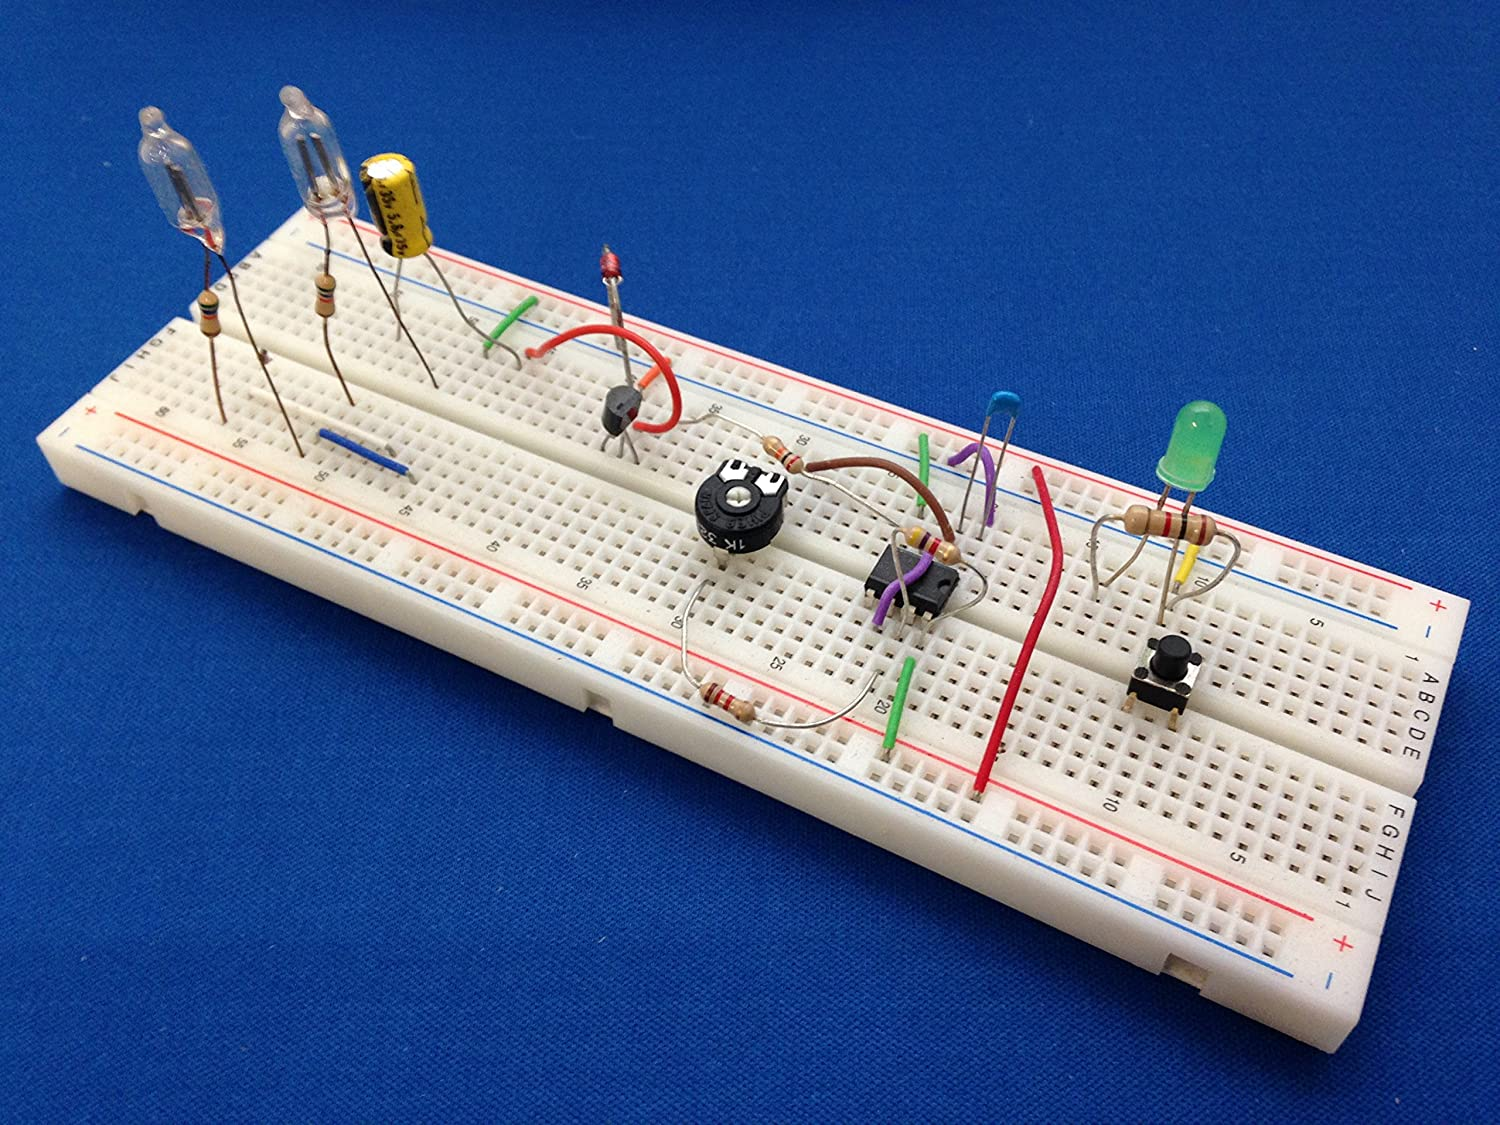 Lm555 Timer Ic Projects Kit 1 With Solderless Is How You Can Make A Metronome The 555 Breadboard Toys Games